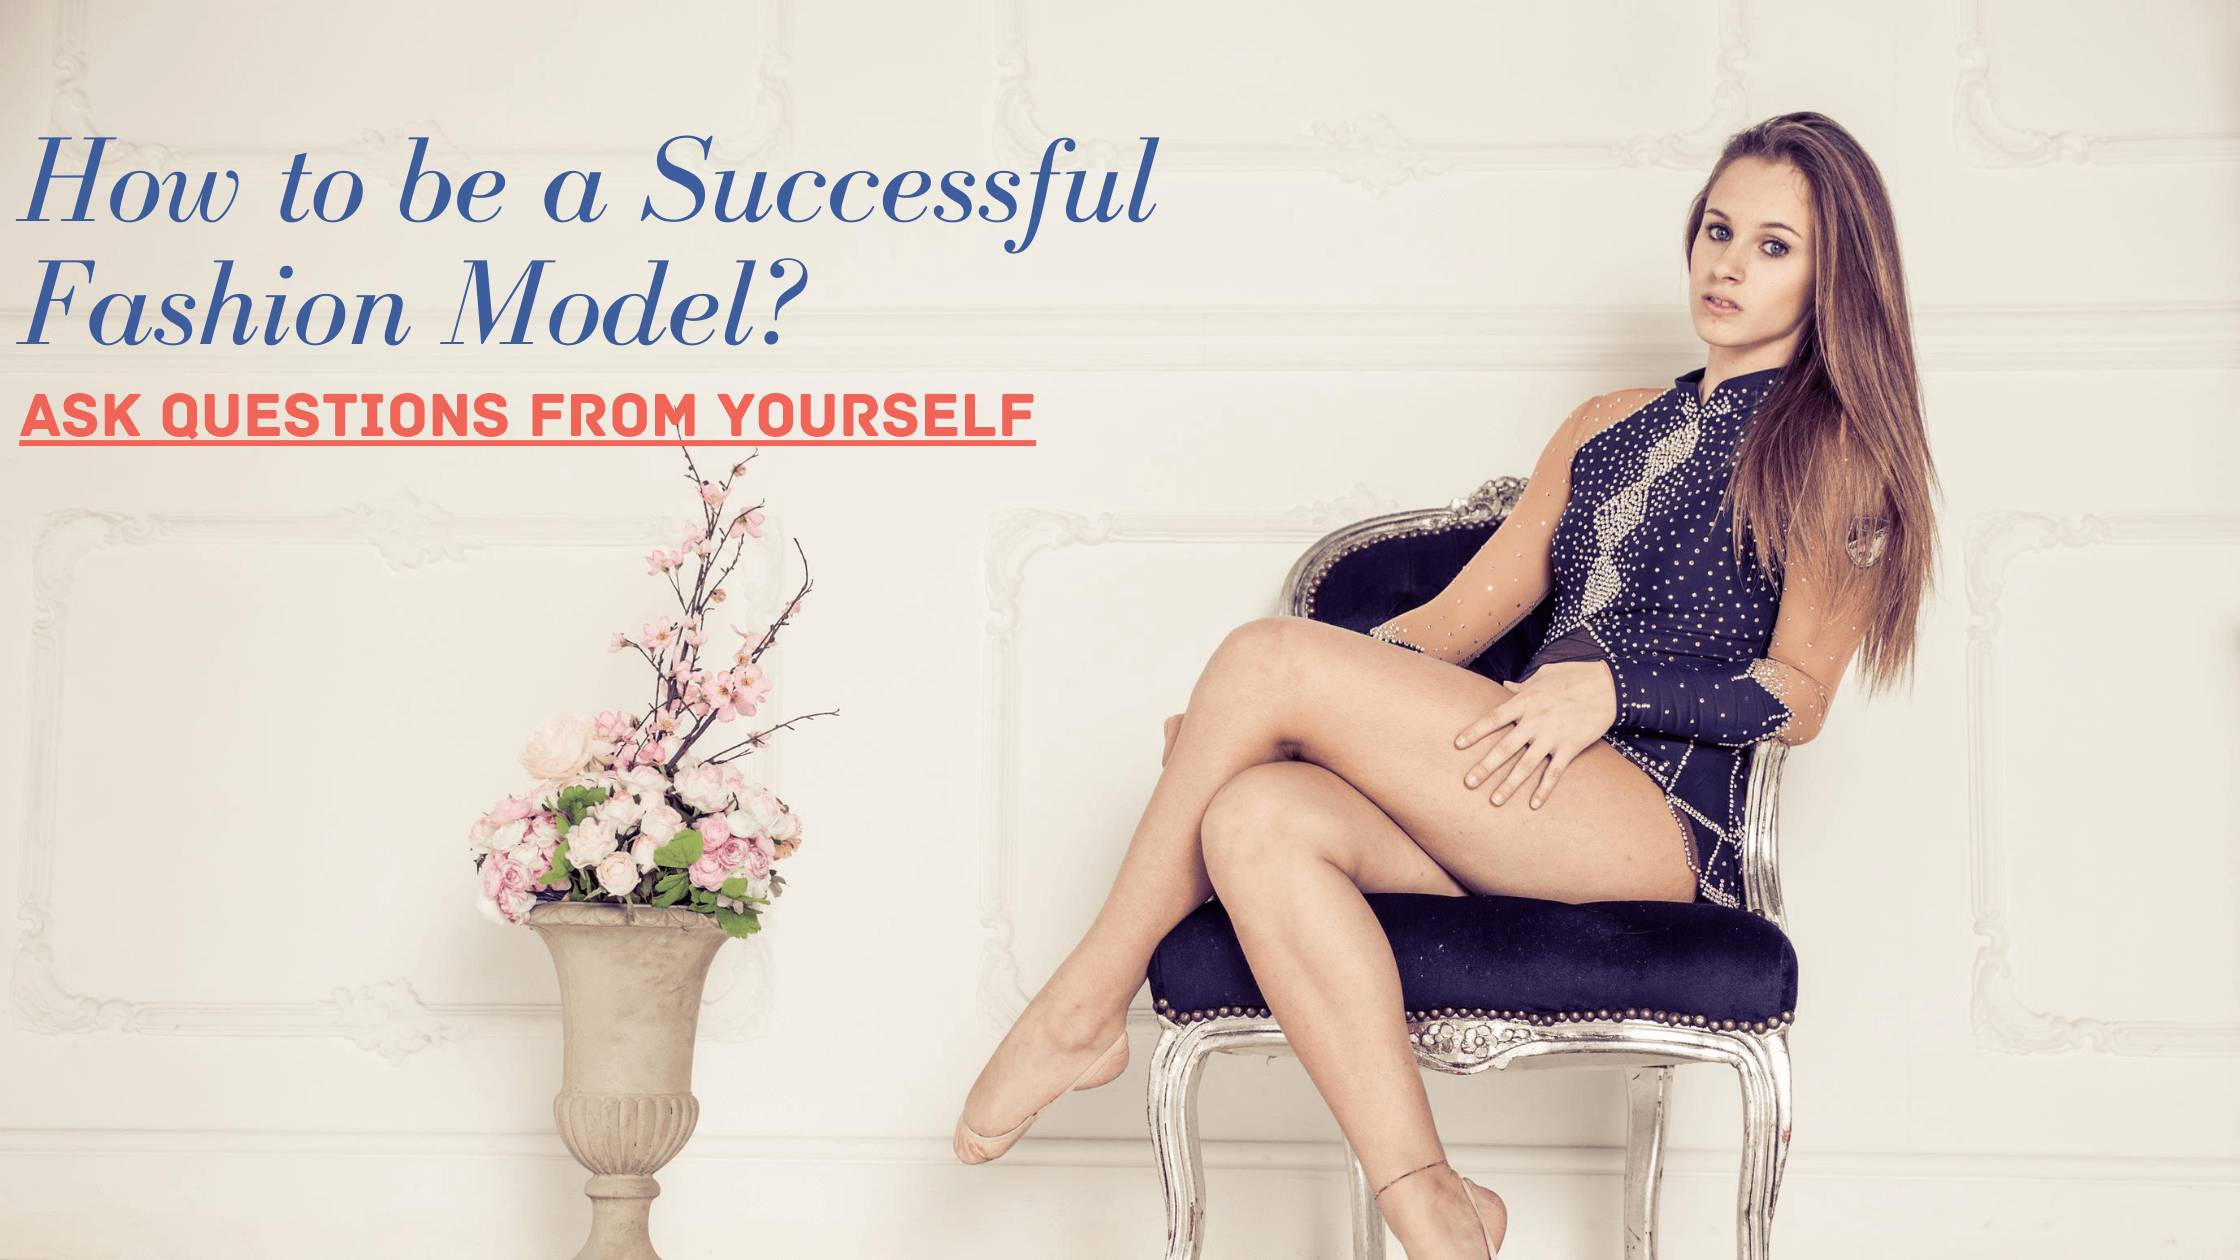 How to be a Successful Fashion Model